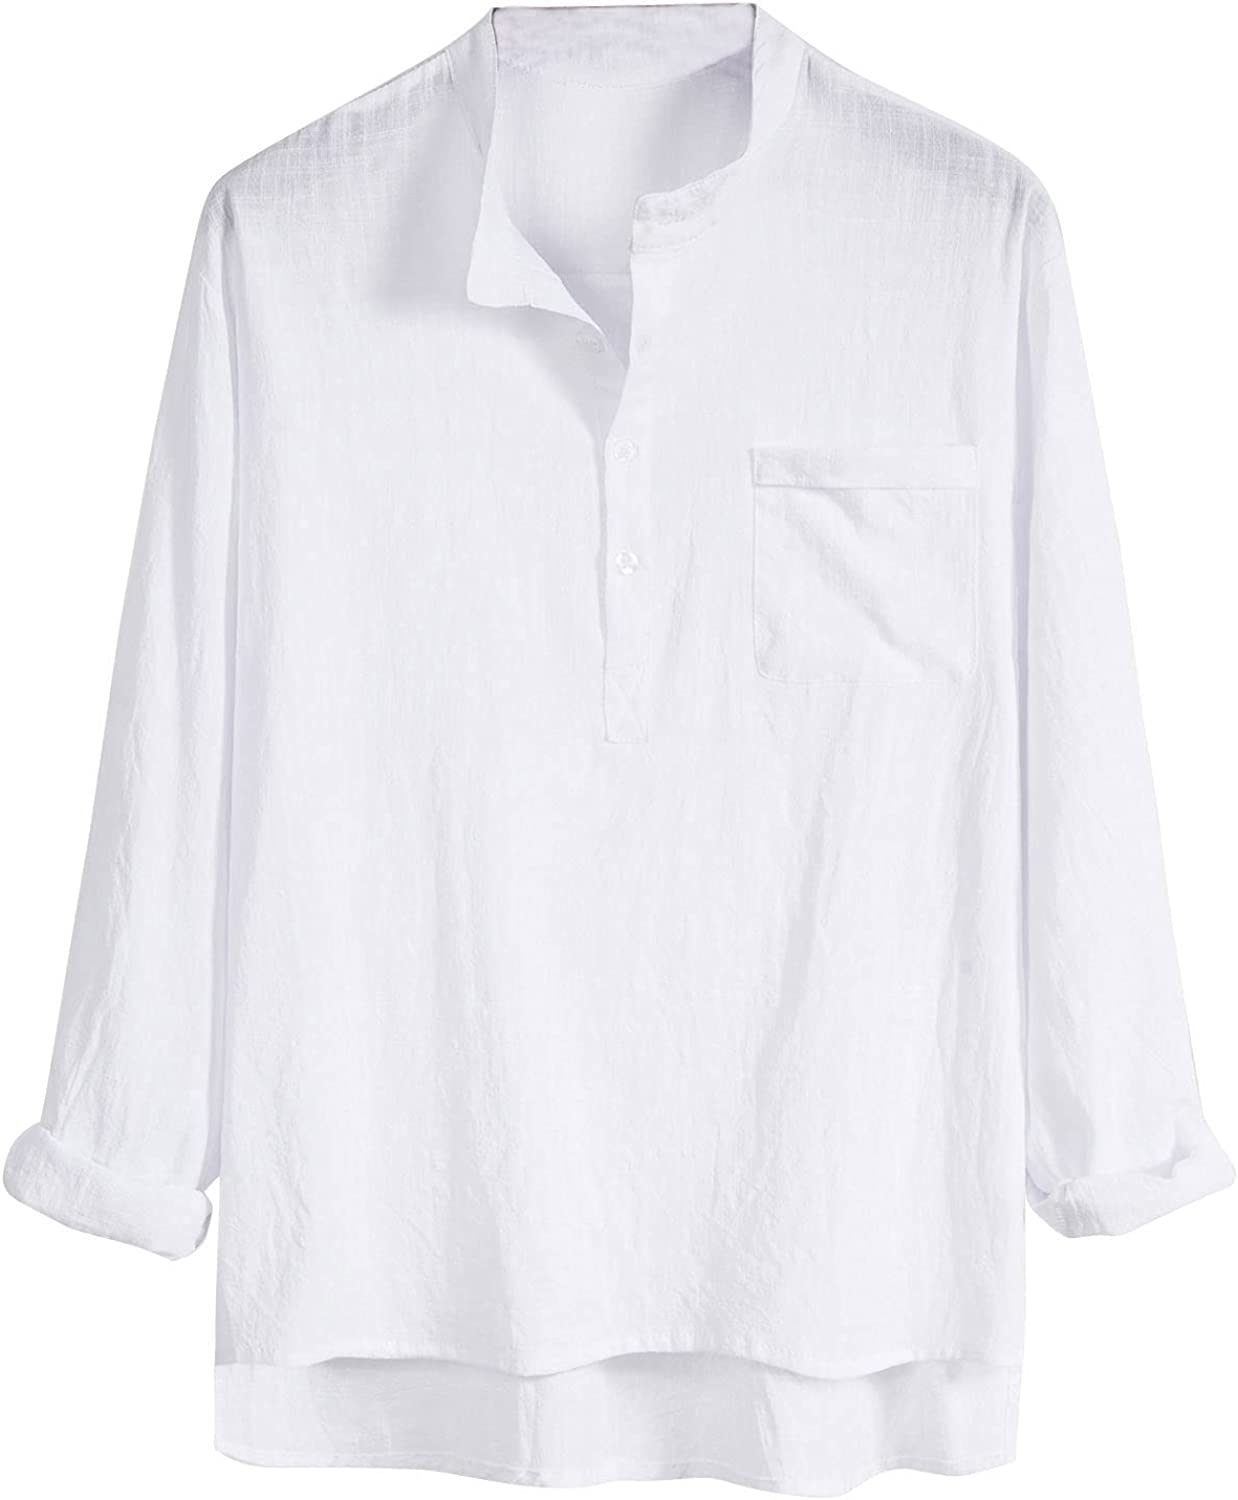 Men's Casual Slim Fit Shirt Solid Color Linen Long Sleeve Button Down Shirt Blouse With Pocket